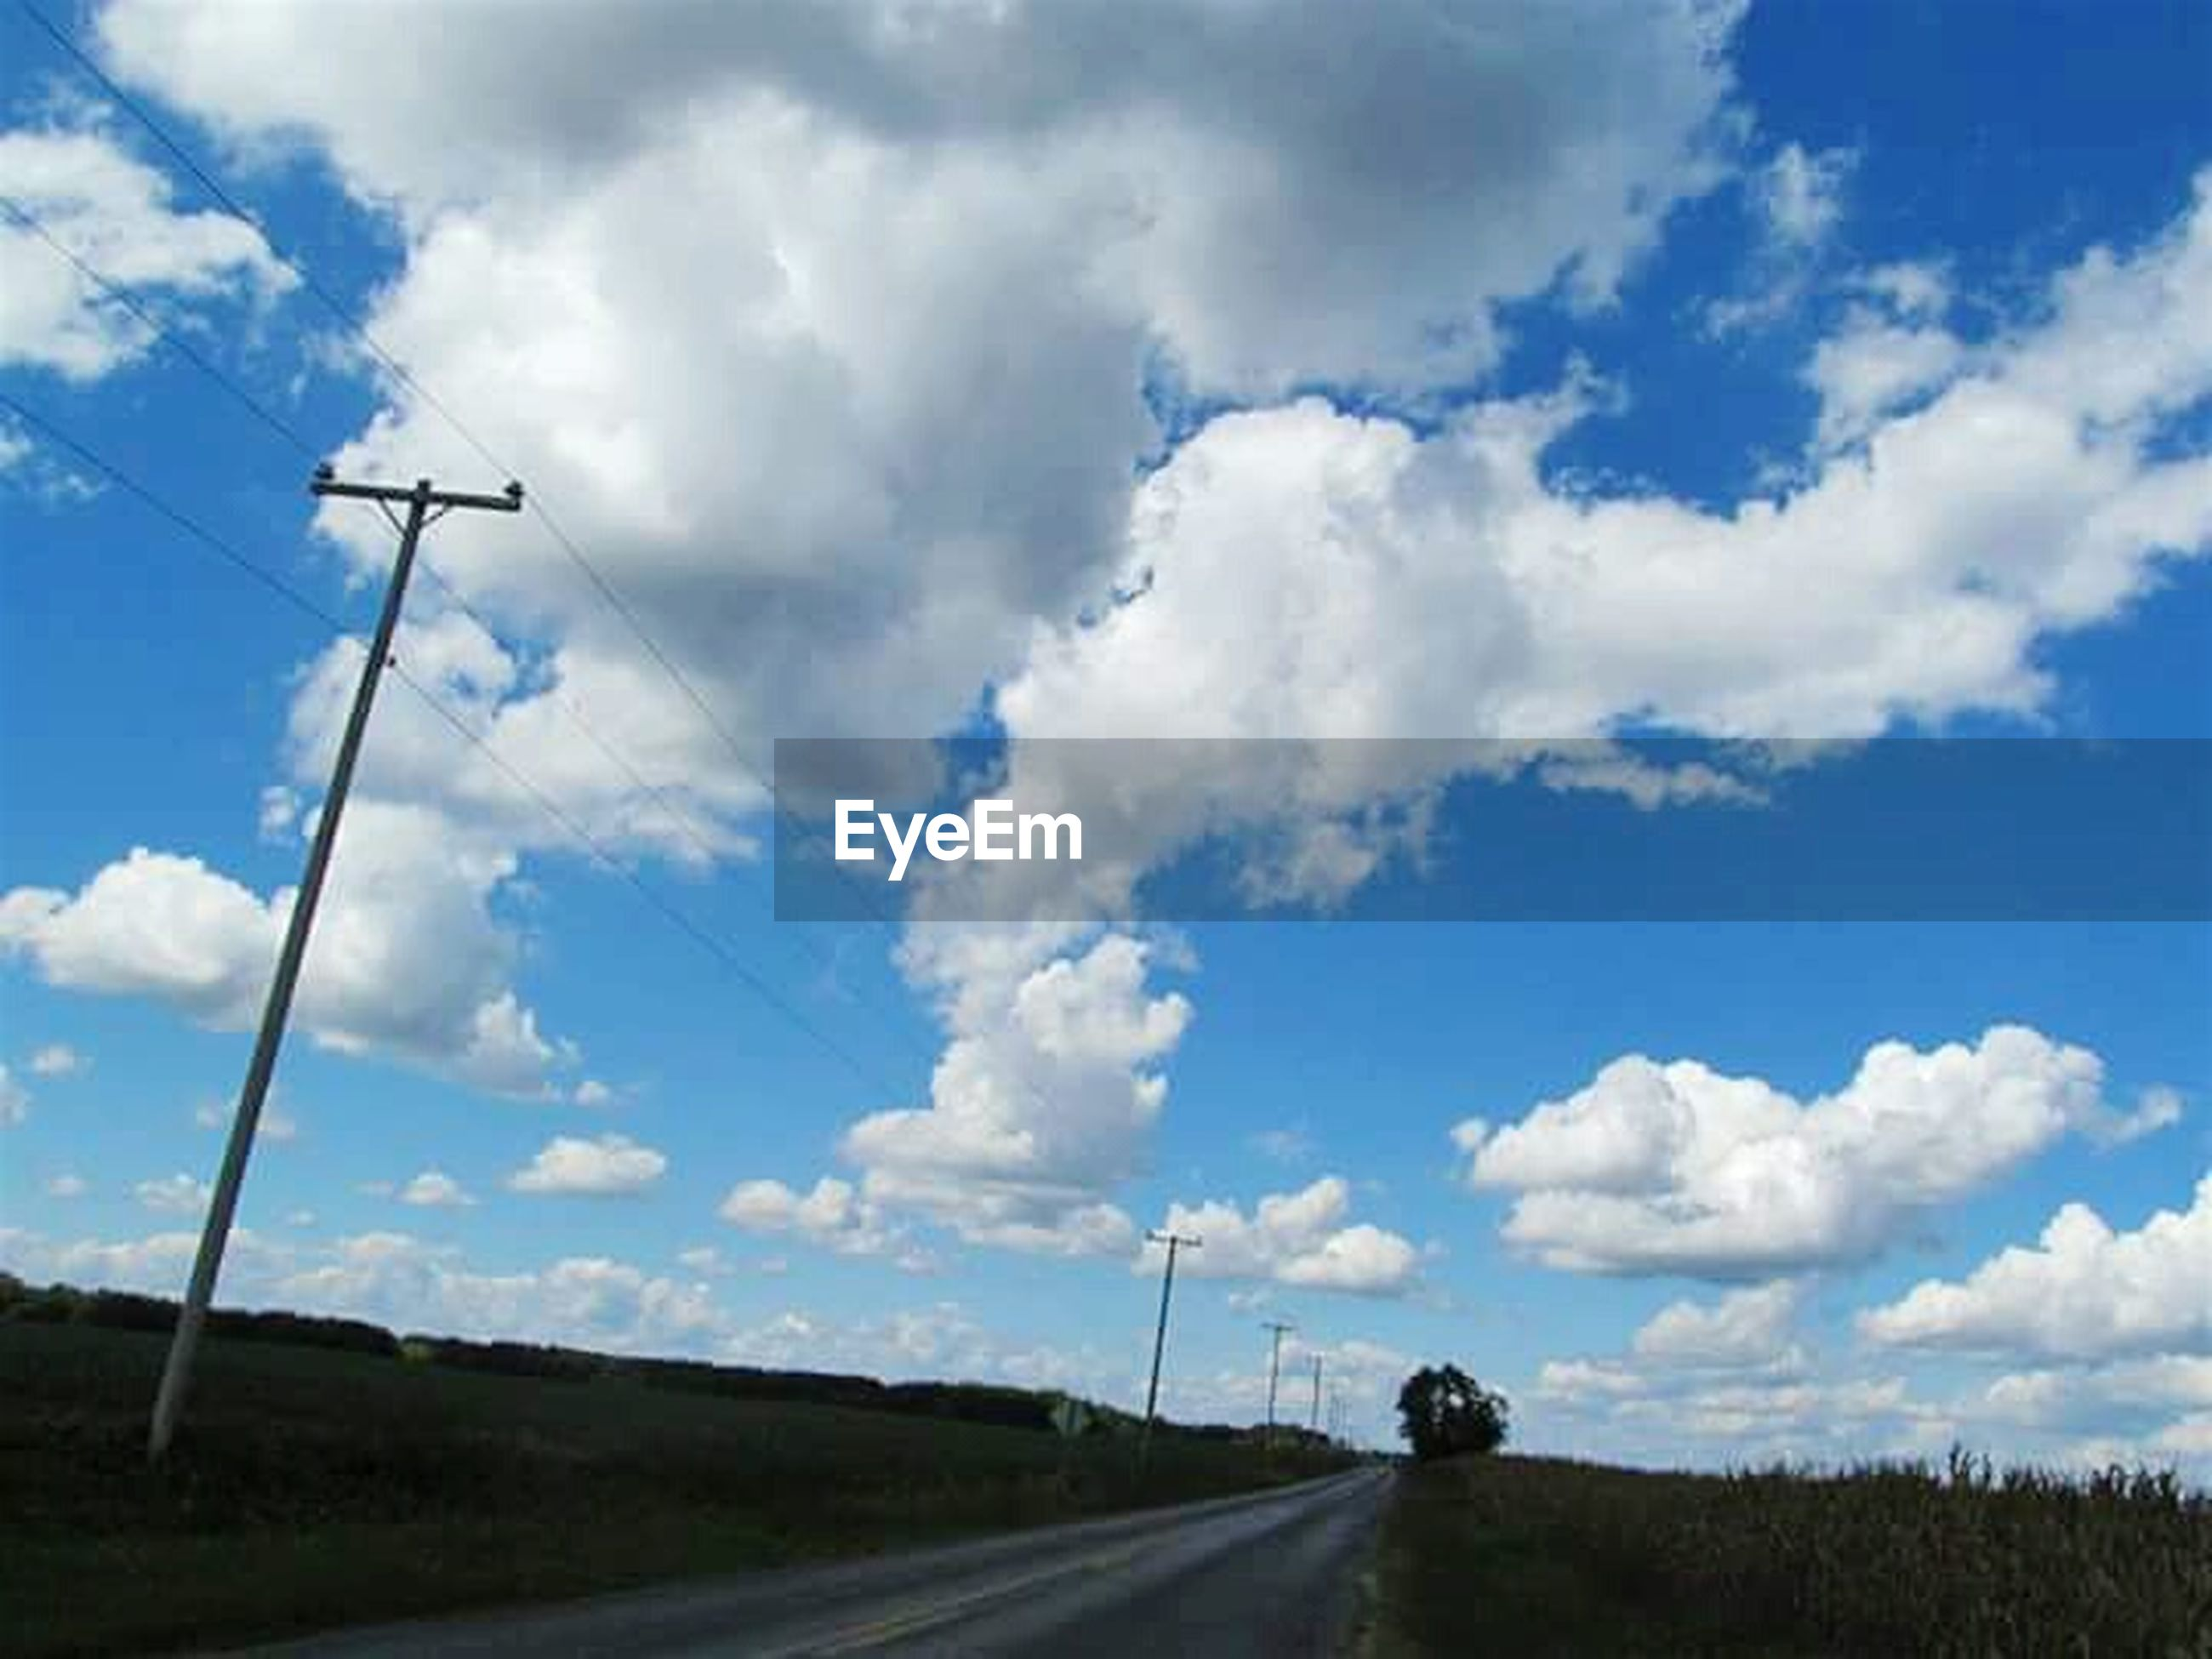 cloud - sky, sky, road, transportation, alternative energy, cable, wind turbine, rural scene, outdoors, wind power, blue, day, telephone line, fuel and power generation, landscape, nature, no people, scenics, technology, road sign